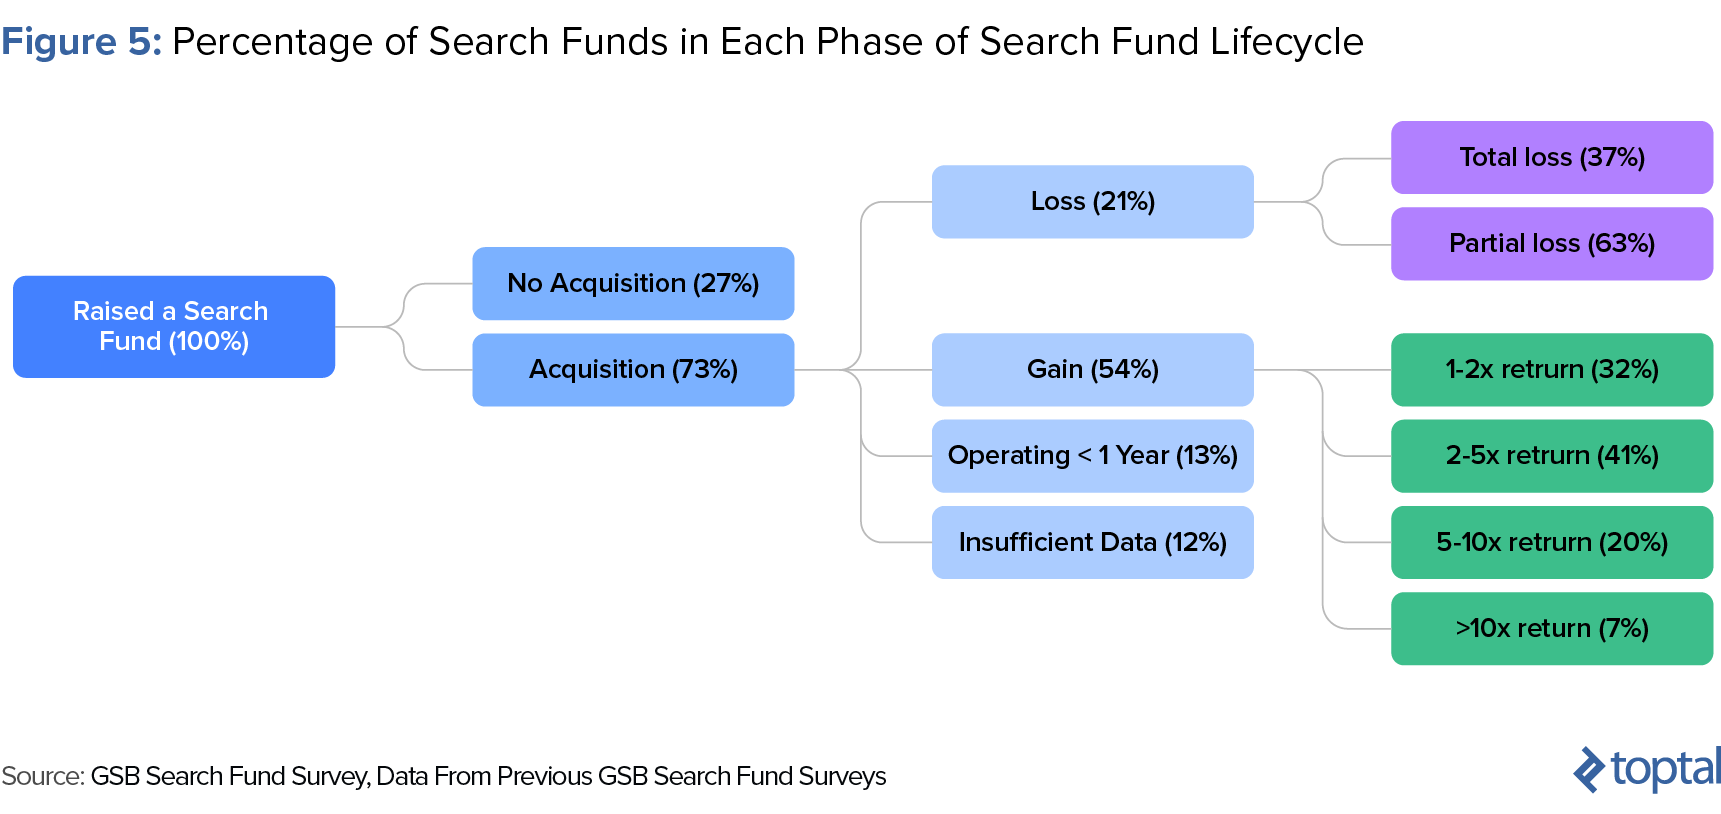 Figure 5: Percentage of Search Funds in Each Phase of Search Fund Lifecycle